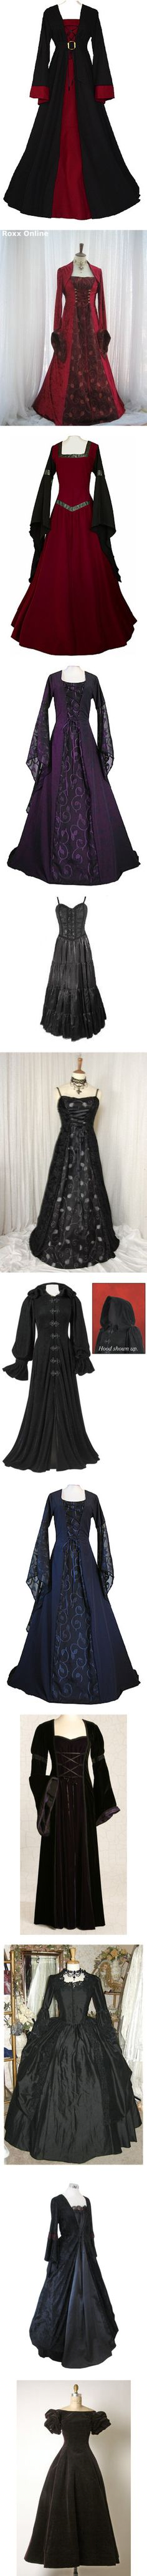 """""""Medevil & Old Fashioned Dresses & Gowns"""" by missspooky77 ❤ liked on Polyvore"""